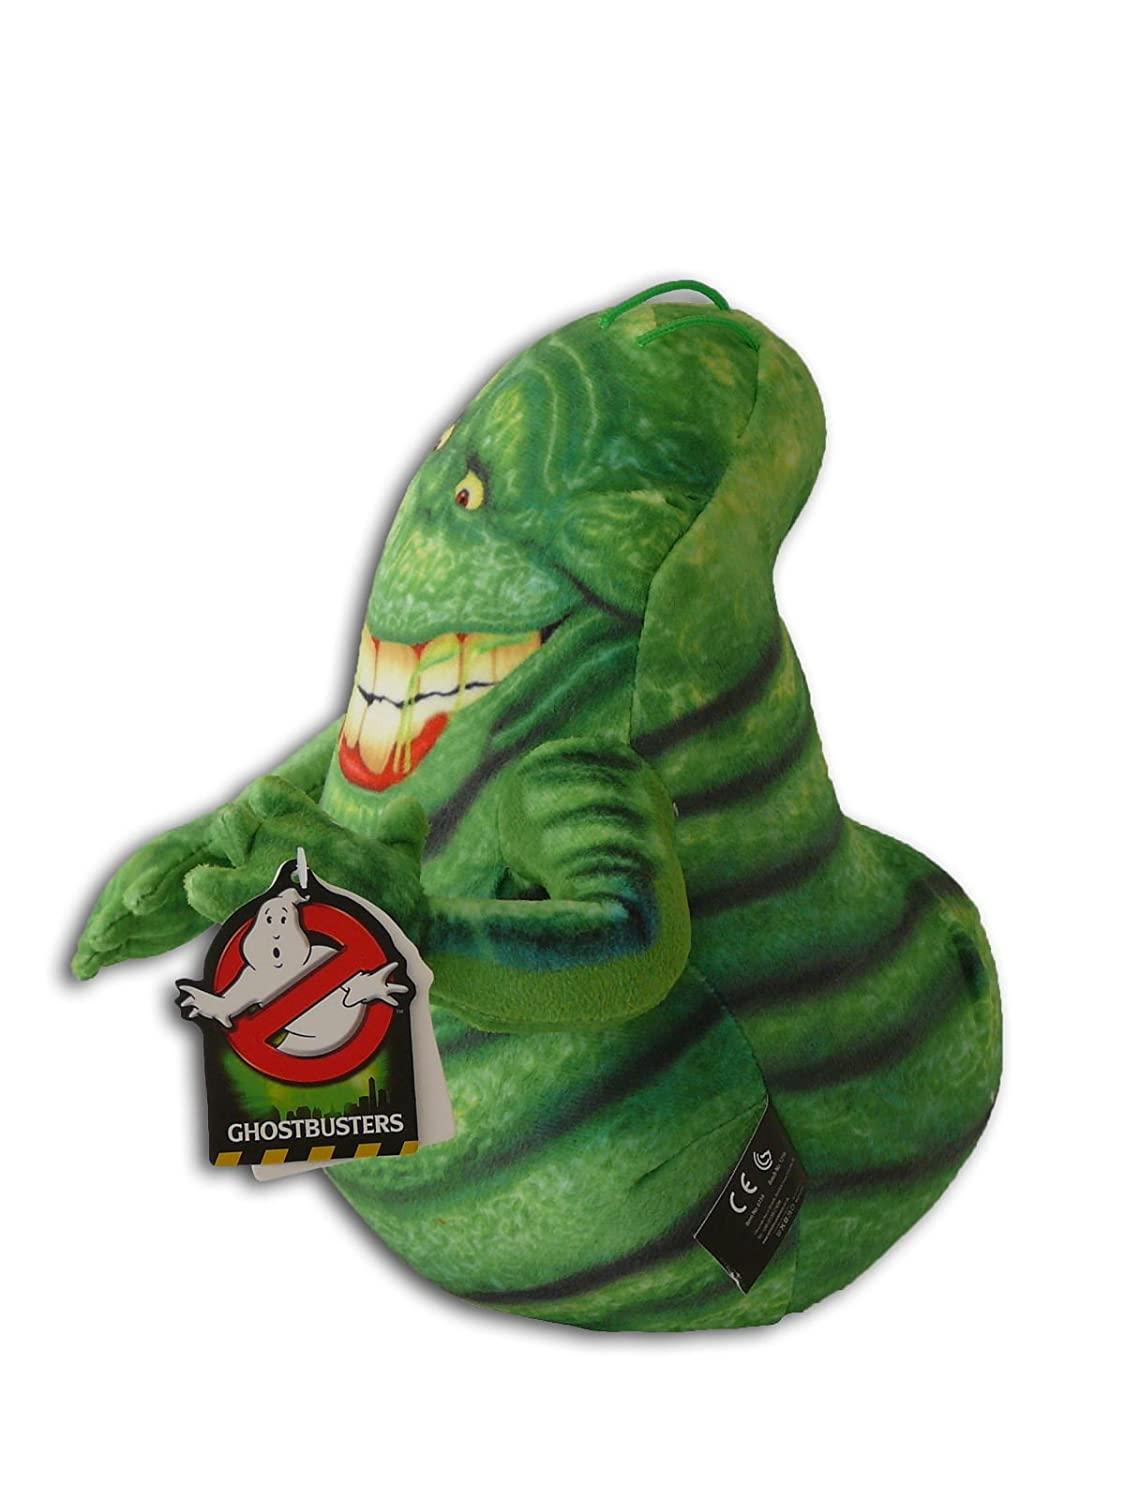 b5ec088cd75 Slimer Ghost 10   Soft Toy Serie Ghostbusters 3 Green Scary Slime Mascot  Original Plush Doll Toy Character Serie  Amazon.co.uk  Toys   Games